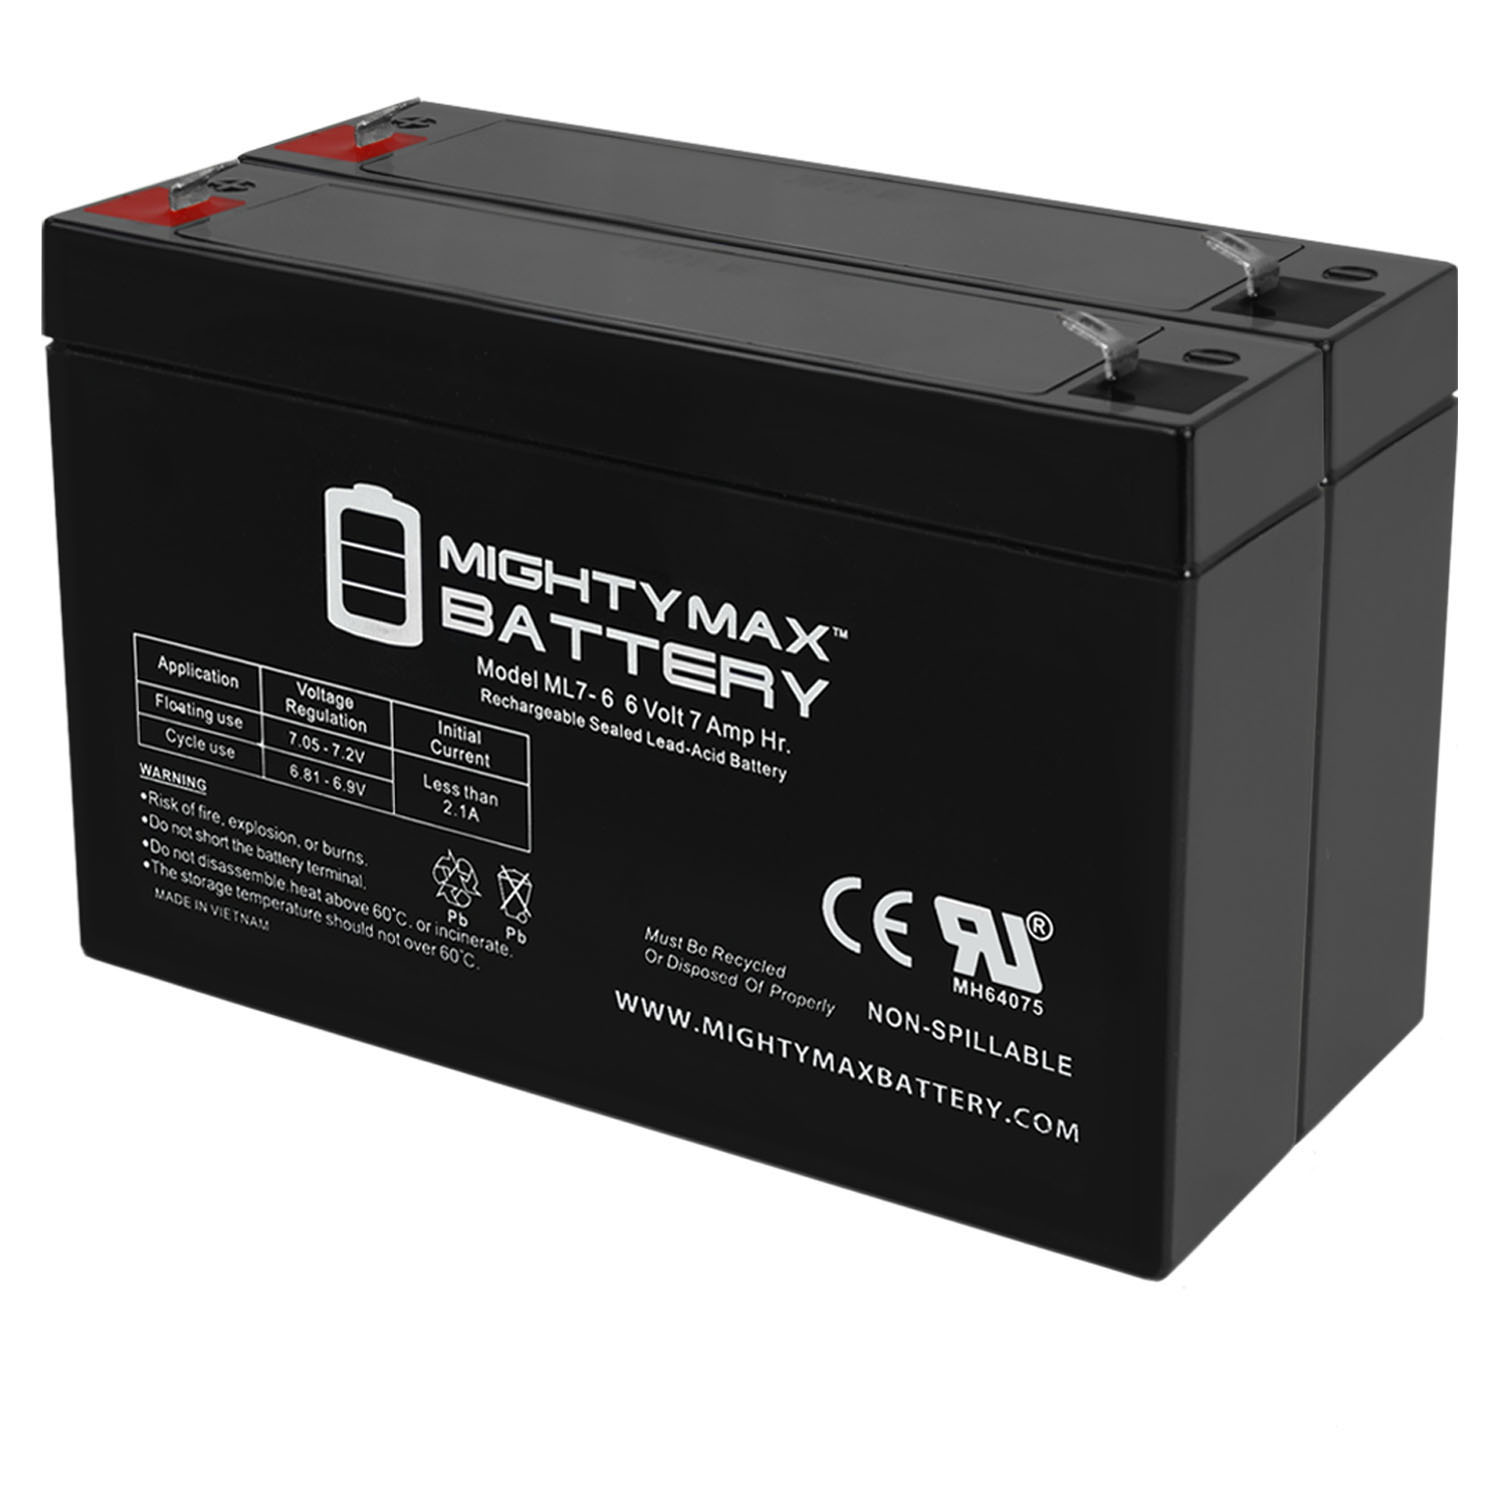 6v 7000 mAh UPS Battery Replacement for GS Portalac PE6V7F1 - 2 Pack